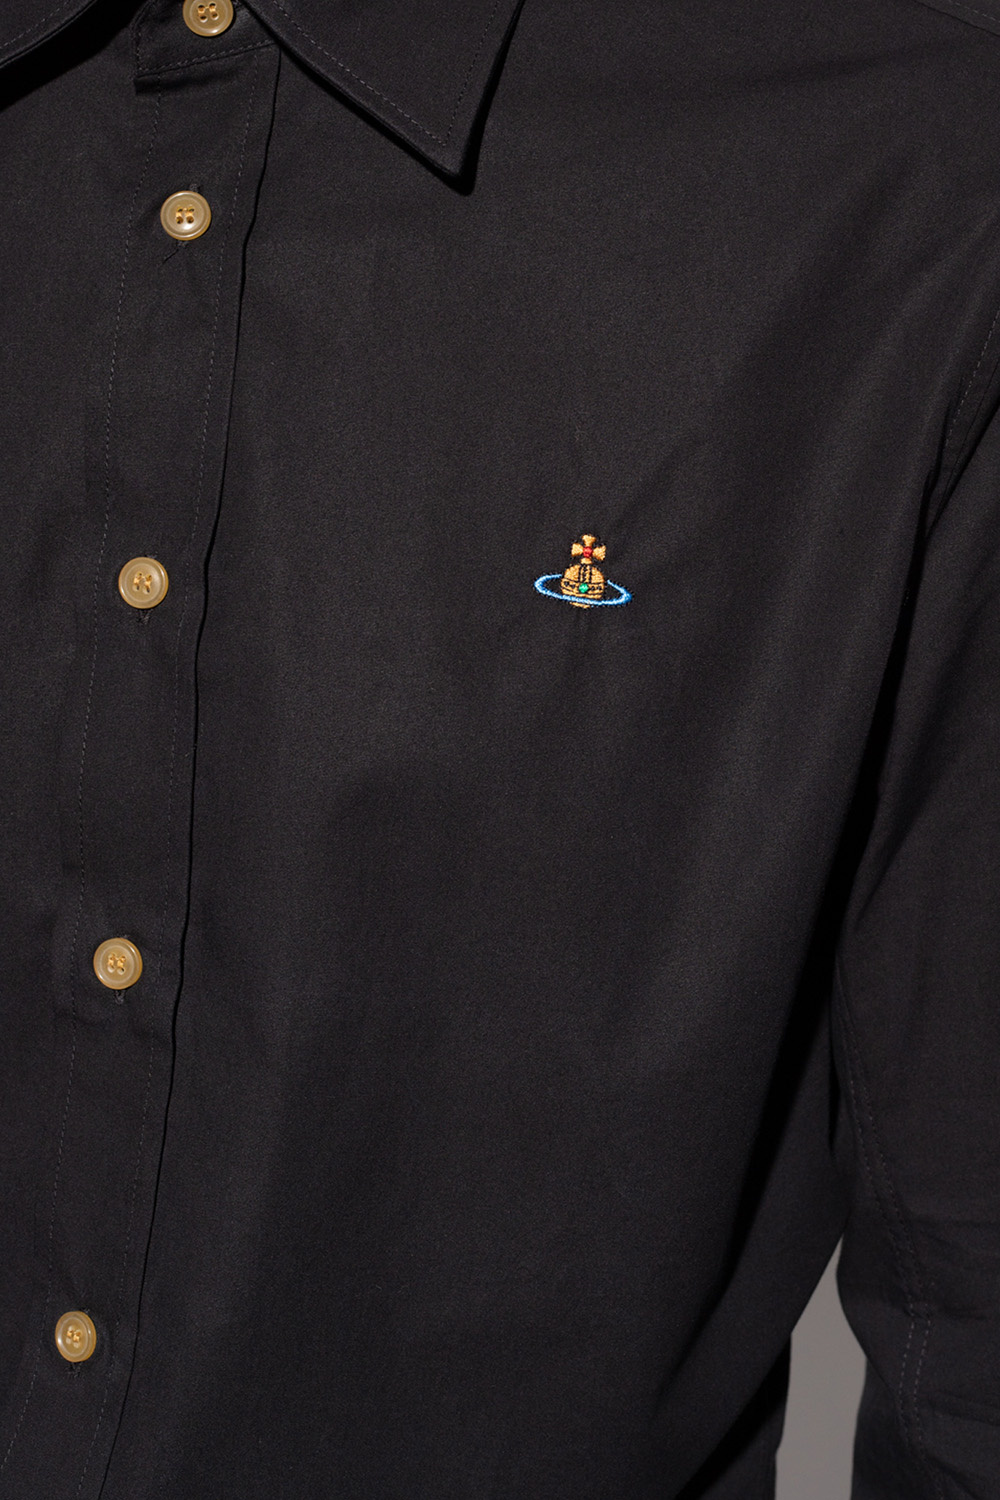 Vivienne Westwood Shirt with logo